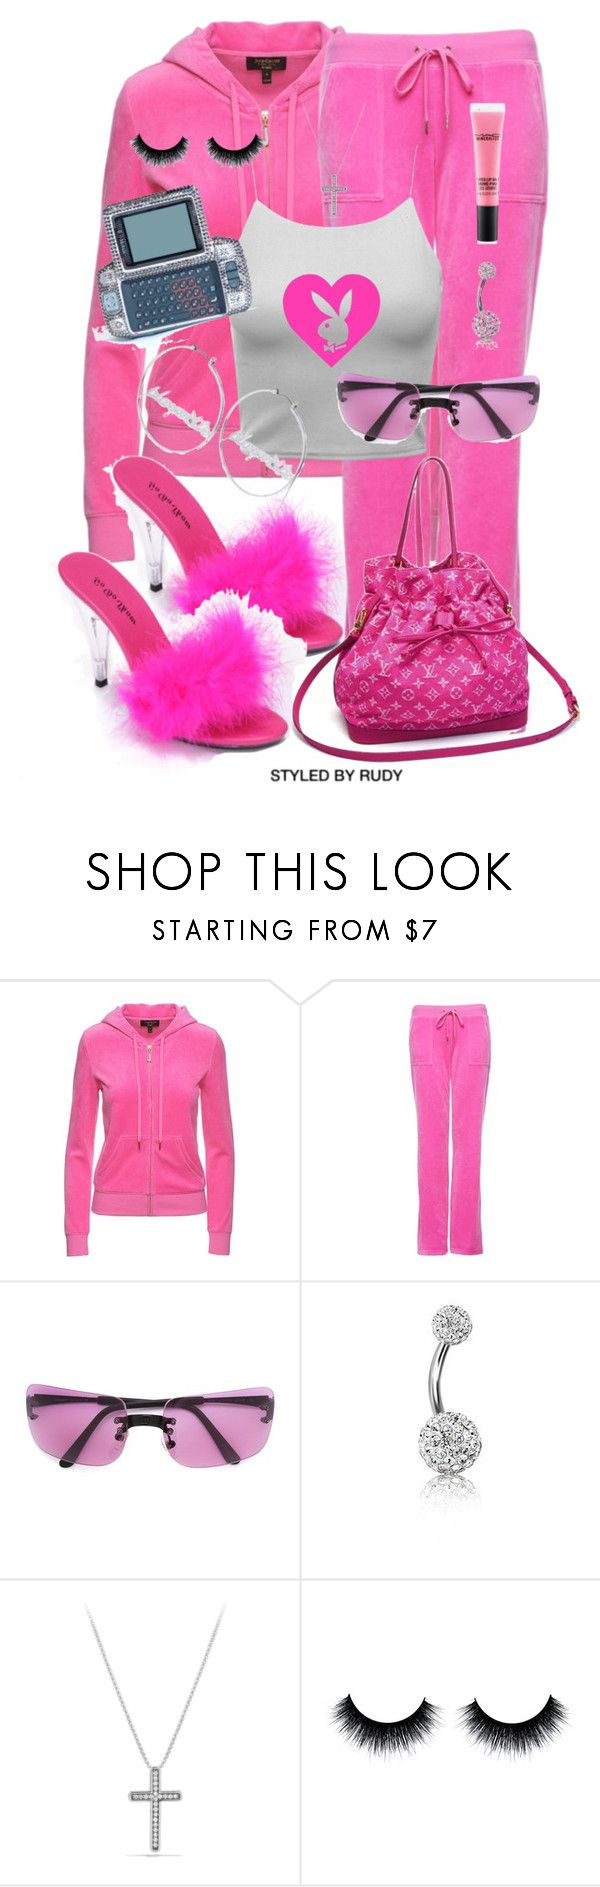 """Untitled #1127"" by styledbyrudy ❤ liked on Polyvore featuring Juicy Couture, Chanel, Bling Jewelry and David Yurman"